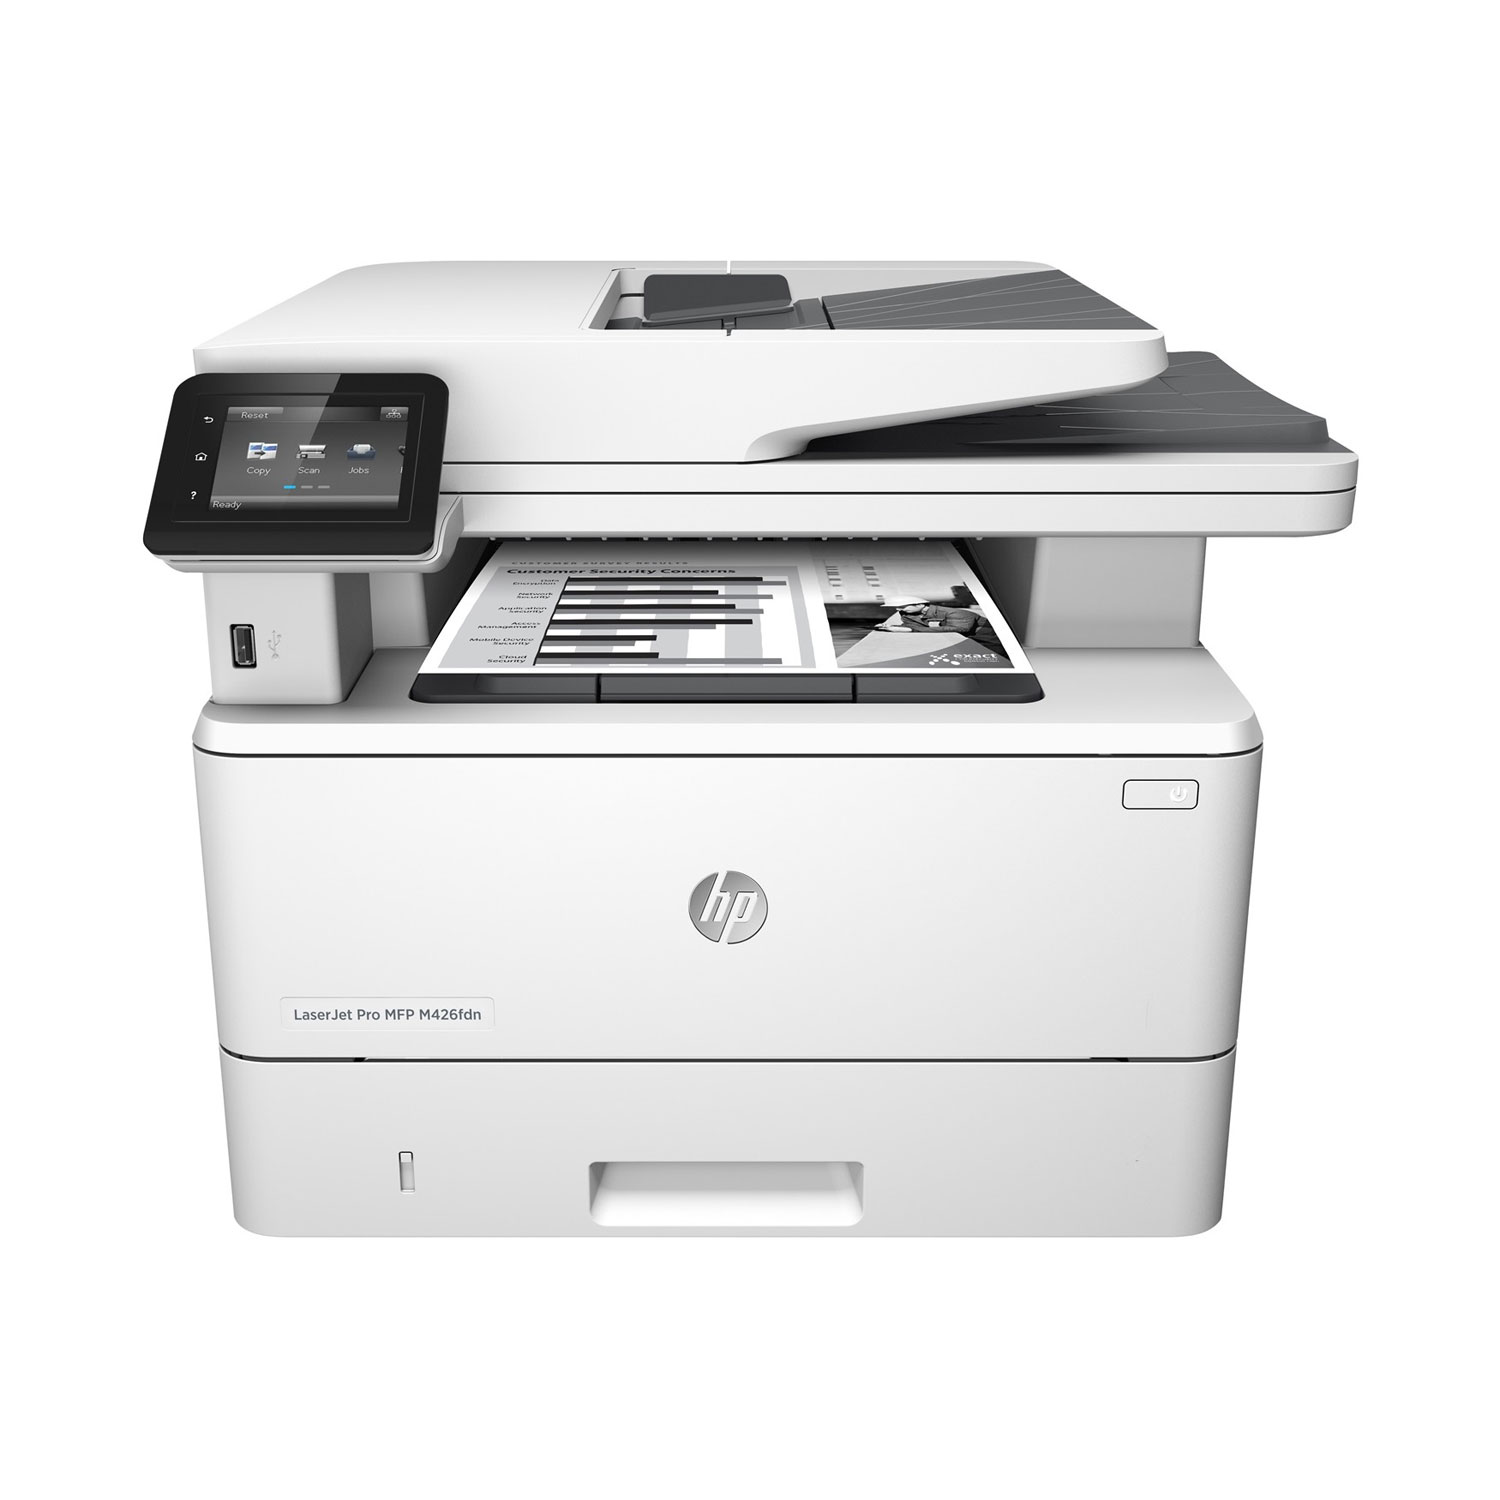 hp laserjet pro 400 m426fdn imprimante multifonction hp. Black Bedroom Furniture Sets. Home Design Ideas